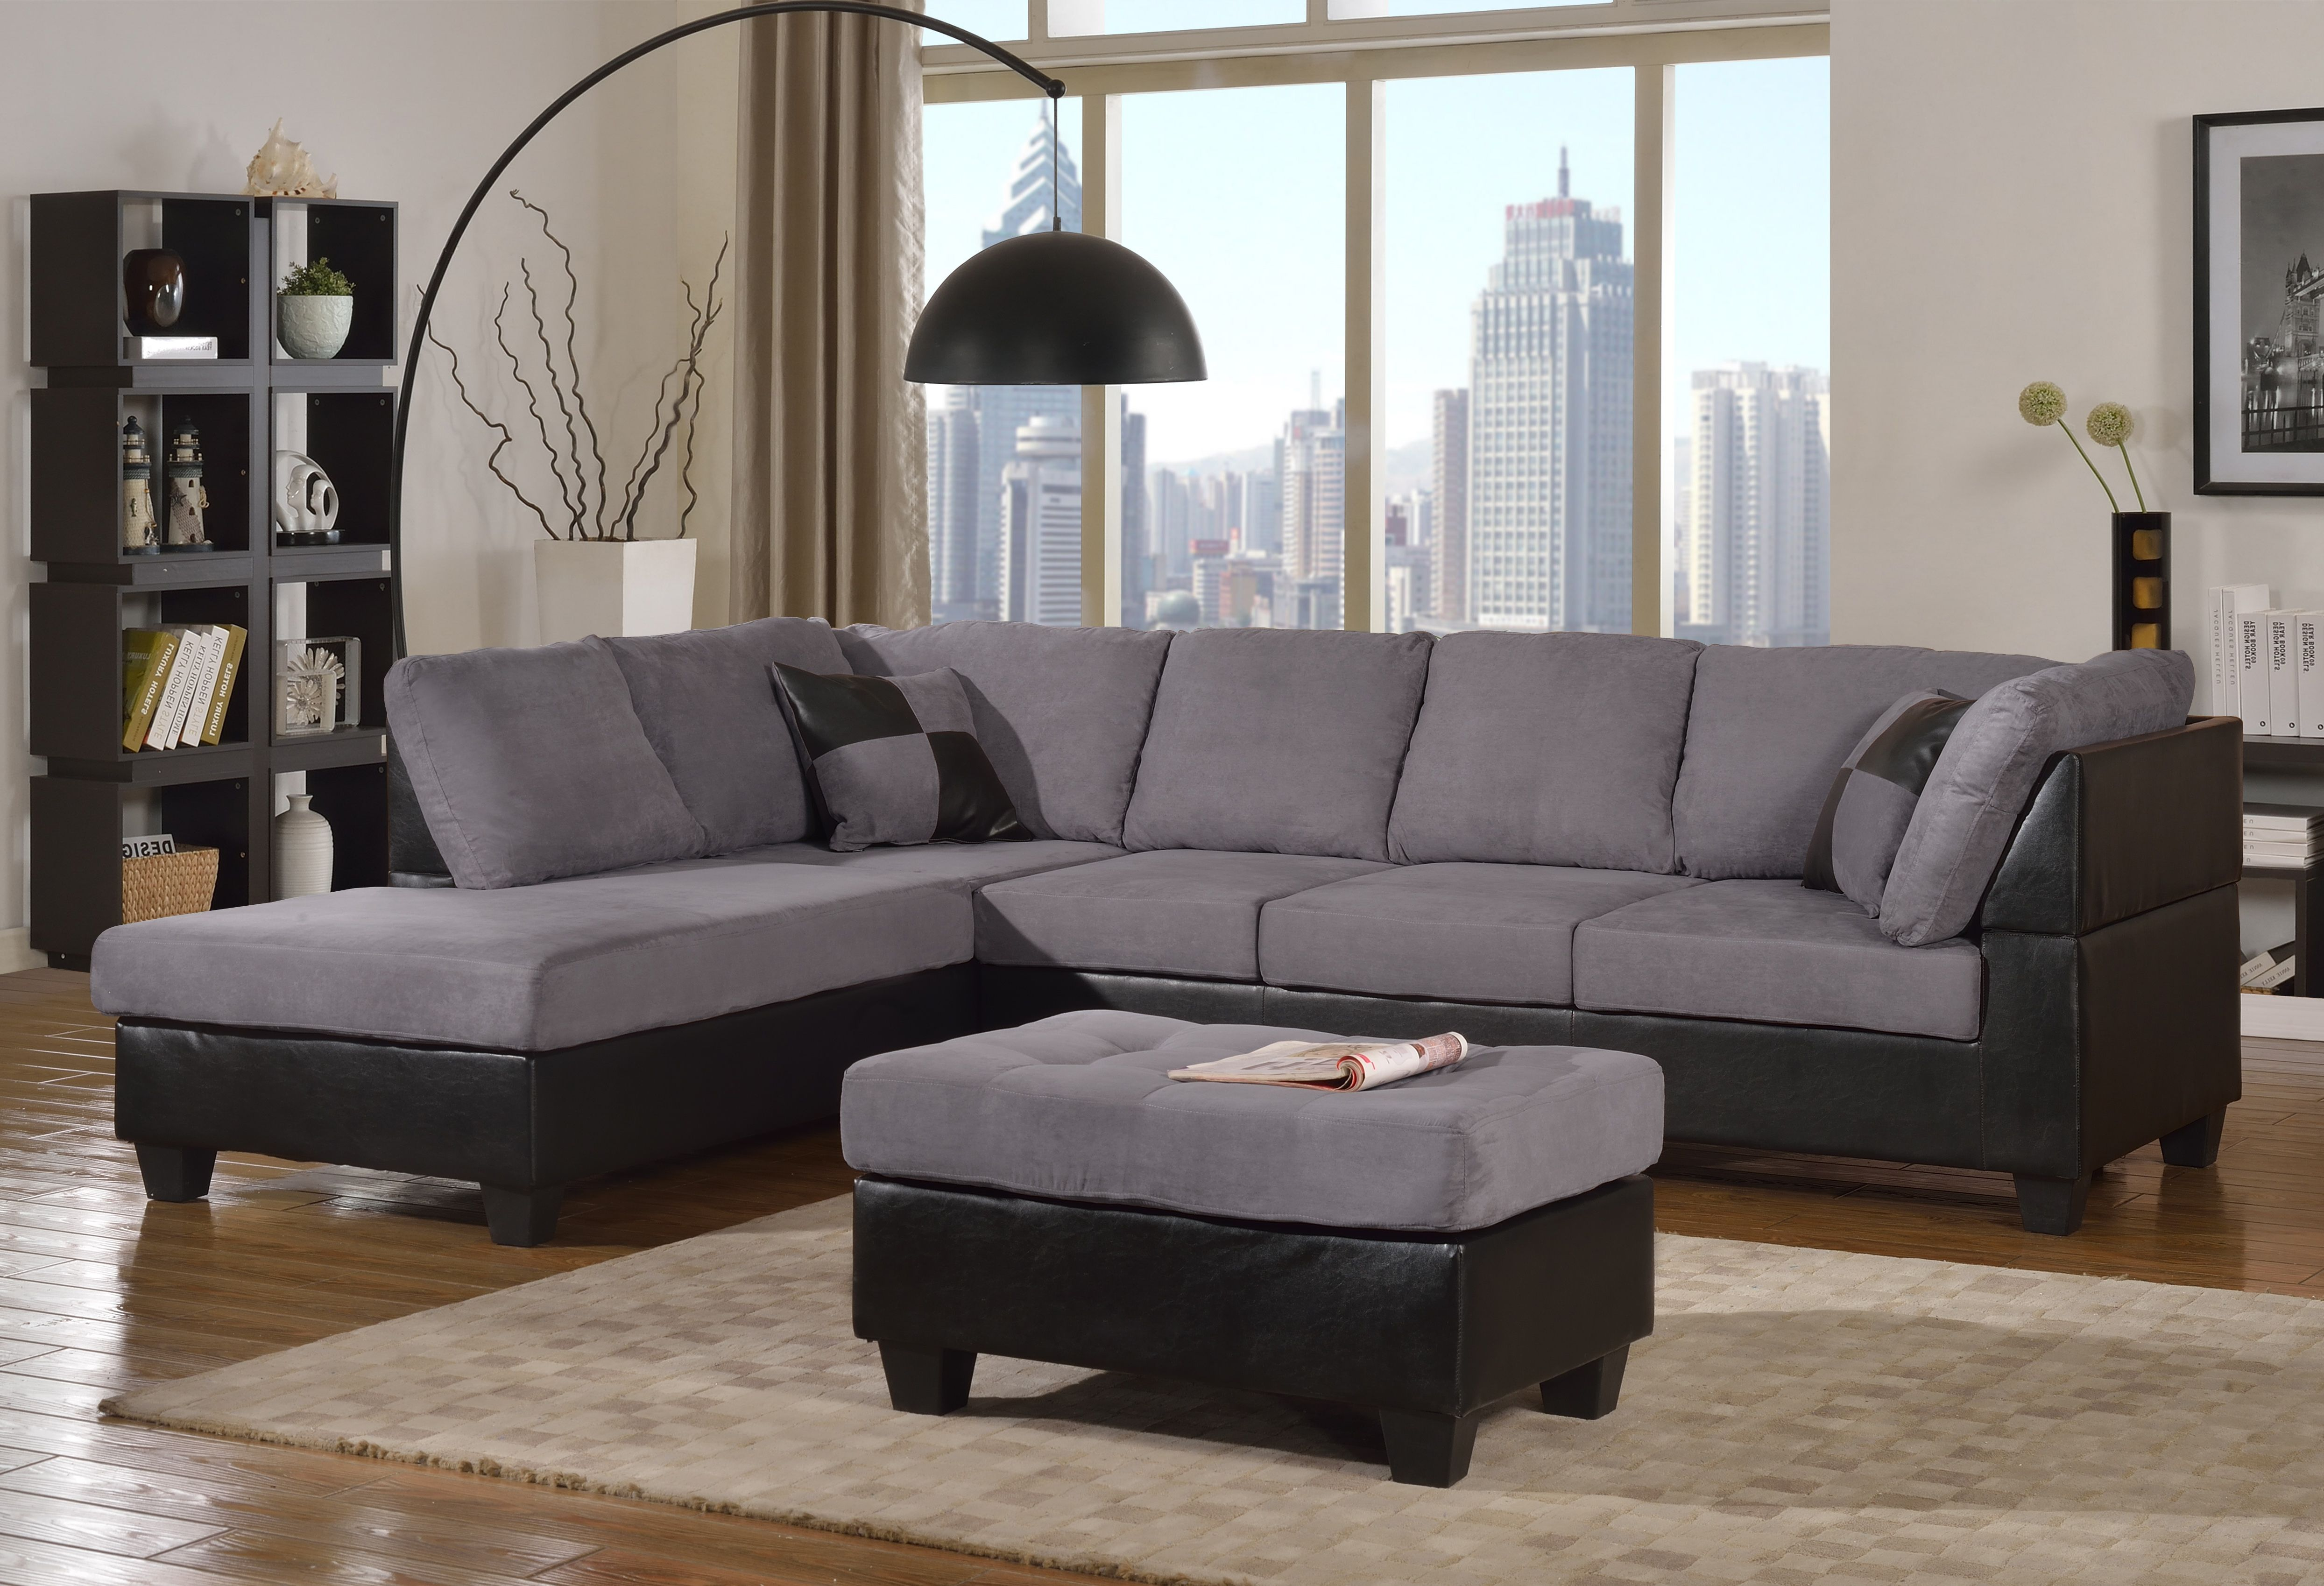 Brilliant Home Modern Decor From Walmart In 2019 Grey Sectional Gmtry Best Dining Table And Chair Ideas Images Gmtryco